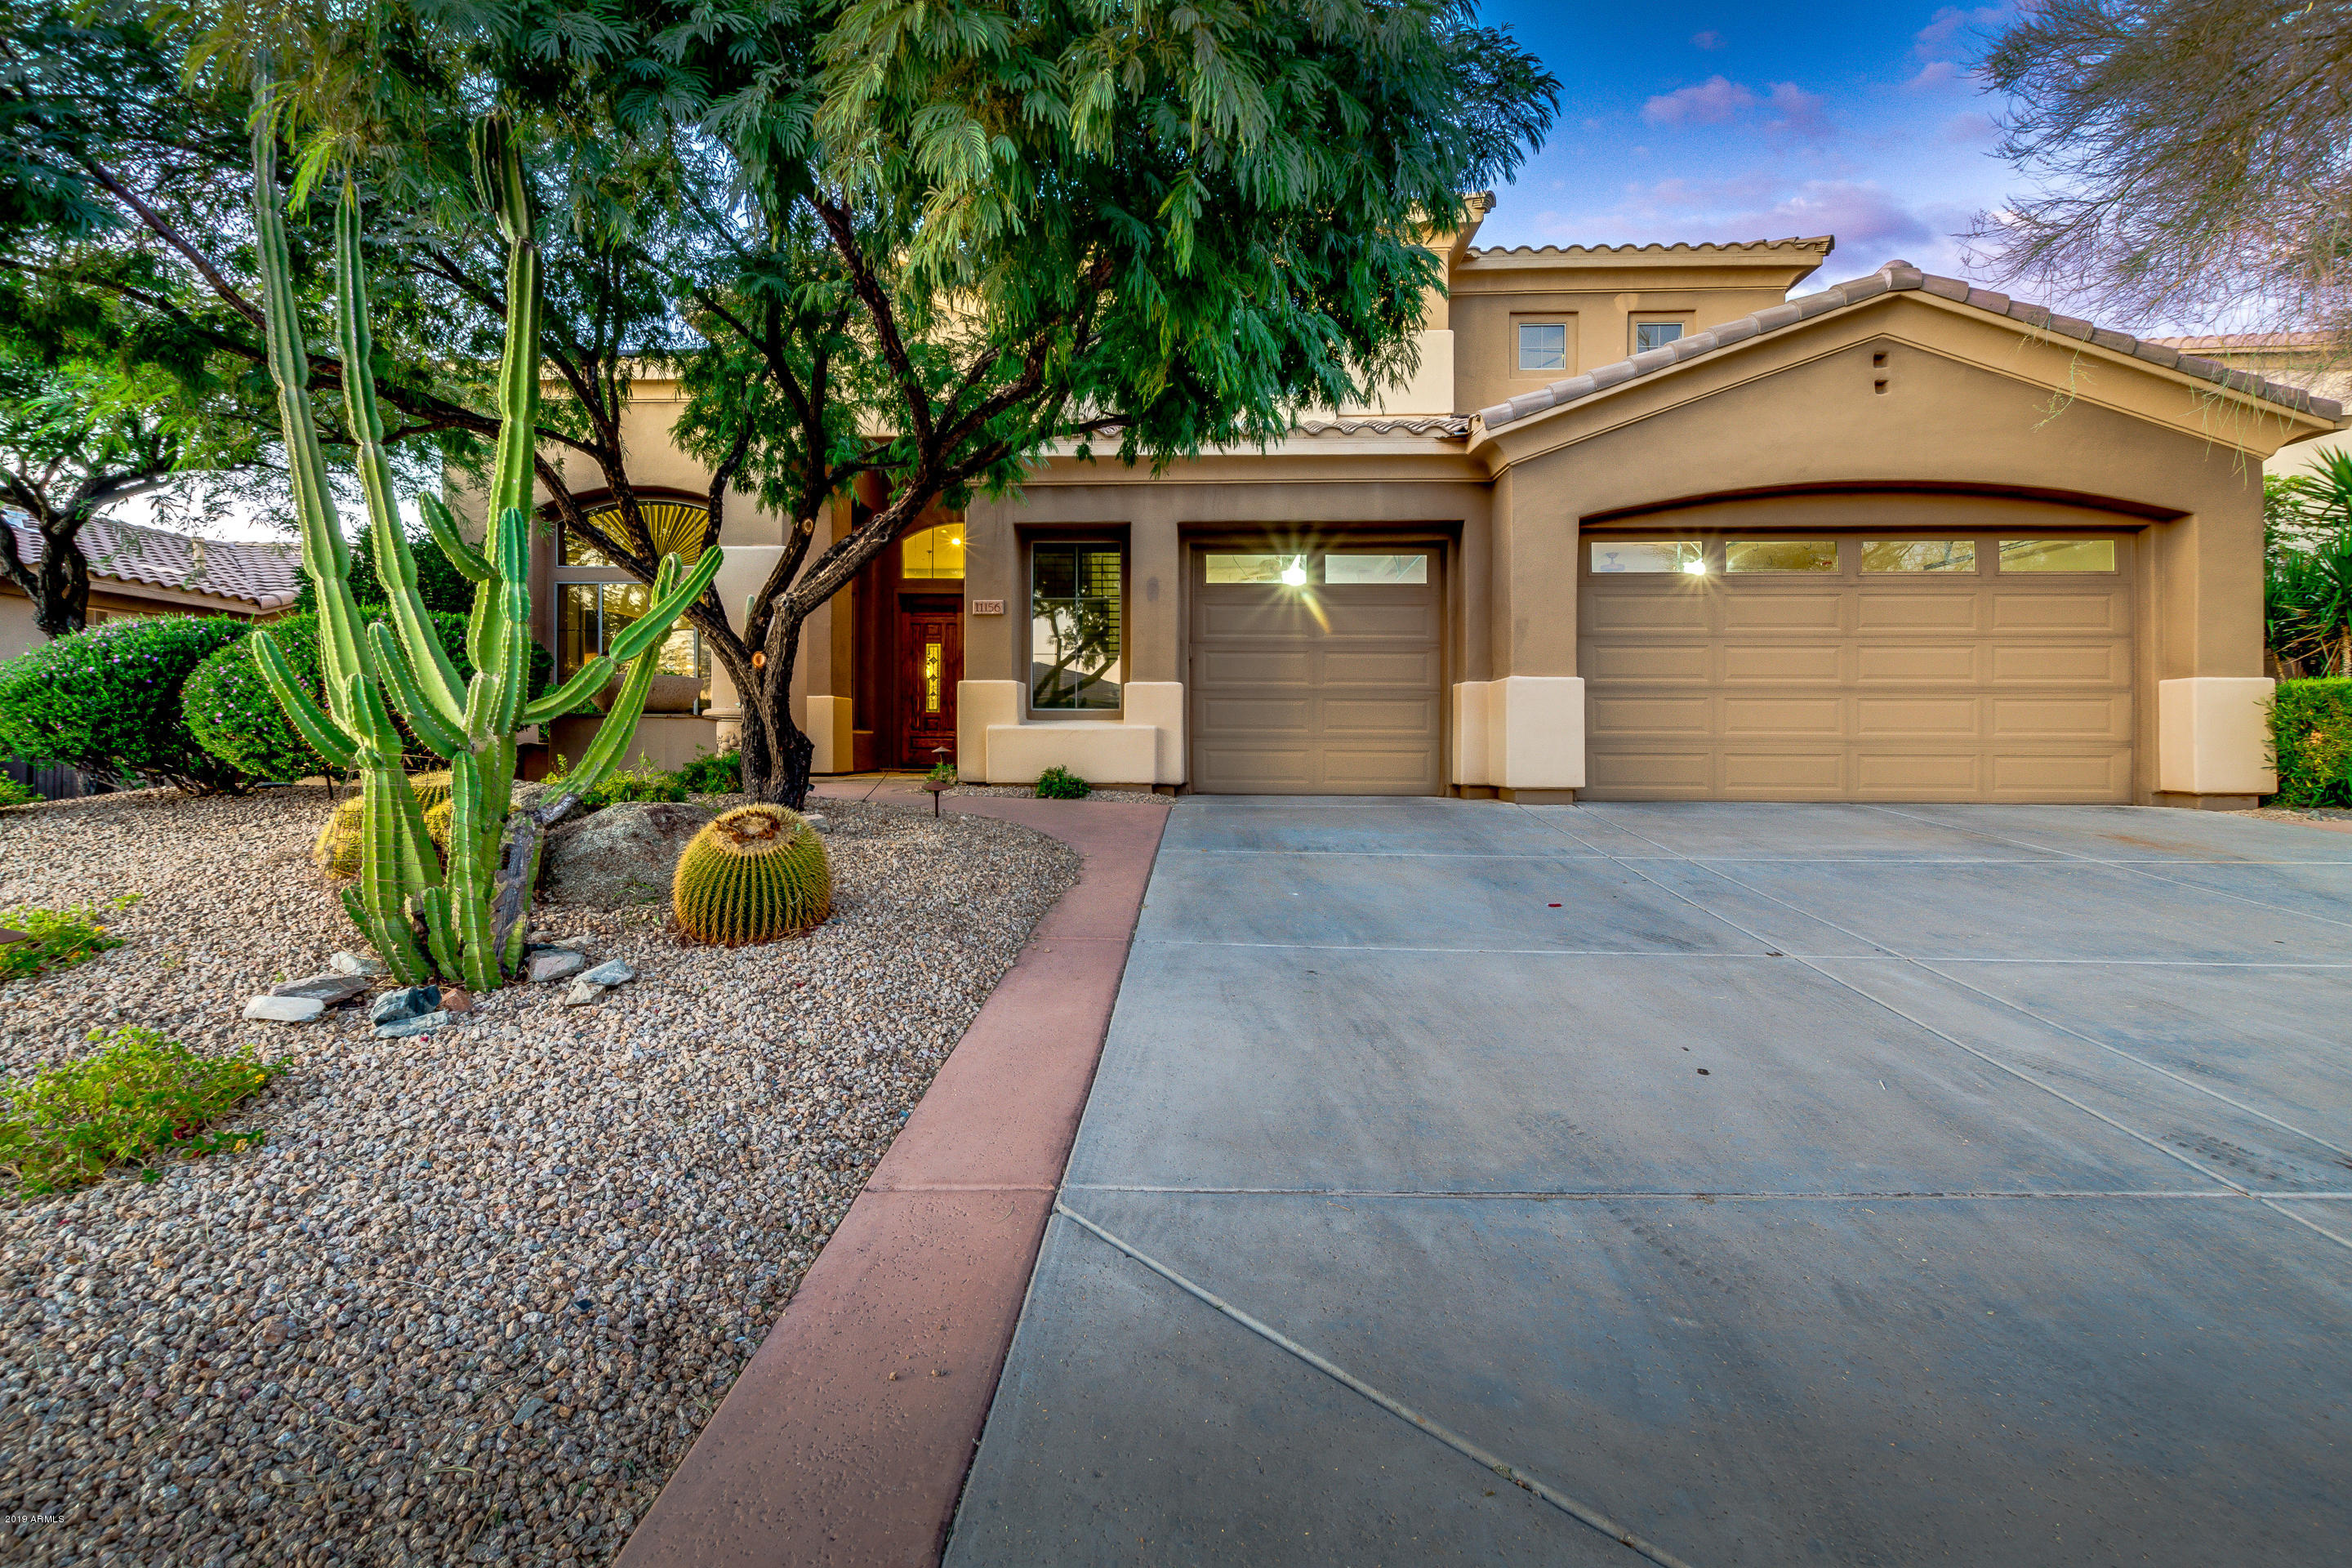 Photo of 11156 E WINCHCOMB Drive, Scottsdale, AZ 85255